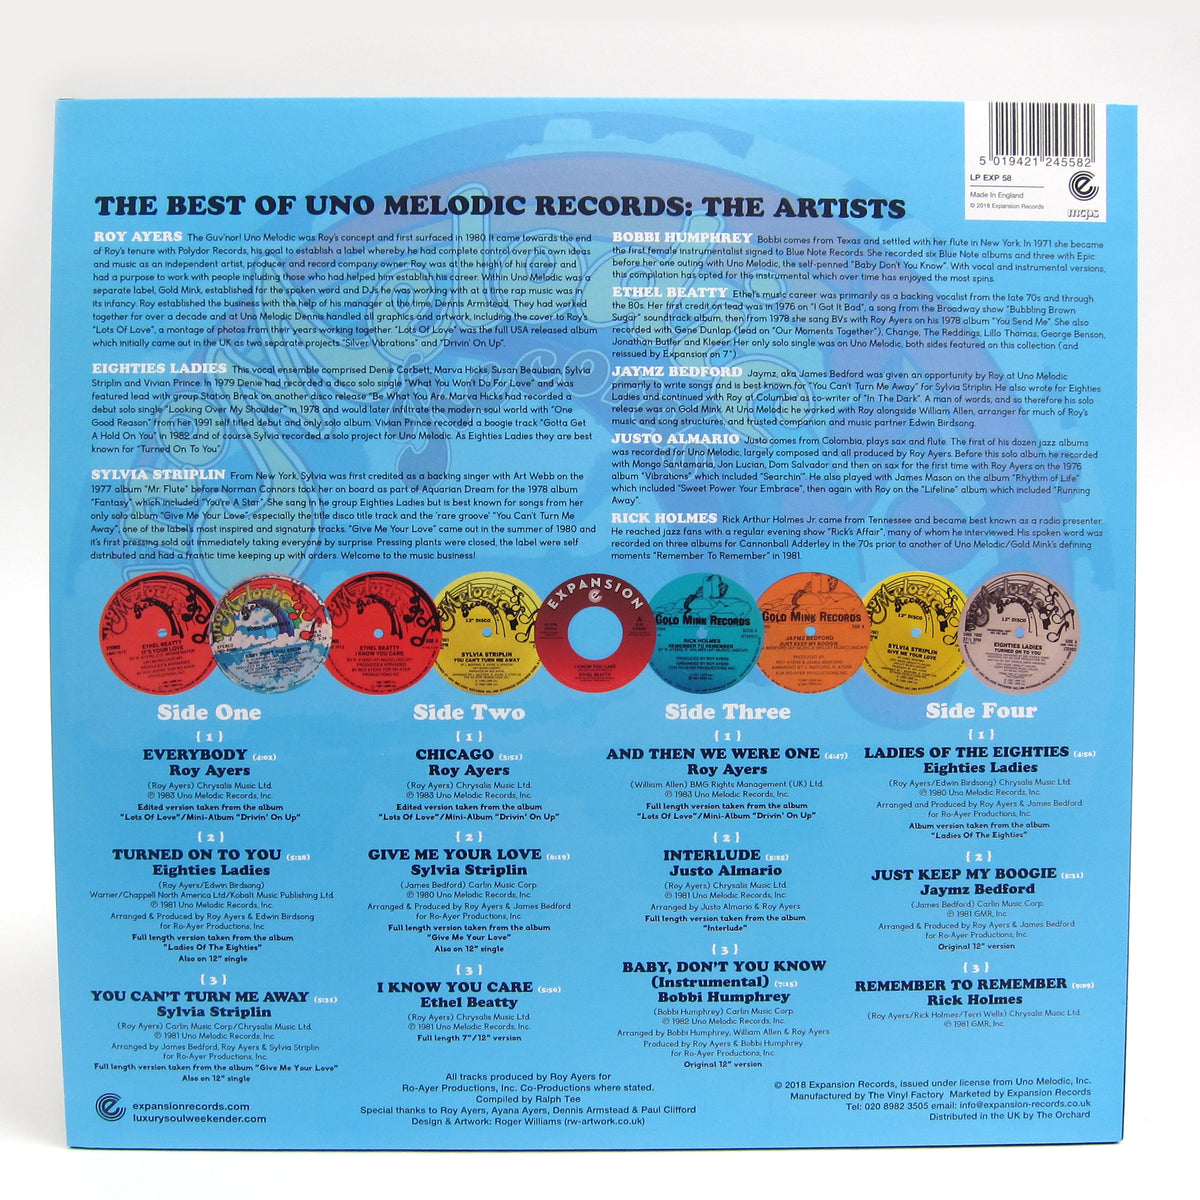 Uno Melodic Records: The Best Of (Roy Ayers, Sylvia Striplin, Bobbi Humphrey) Vinyl 2LP